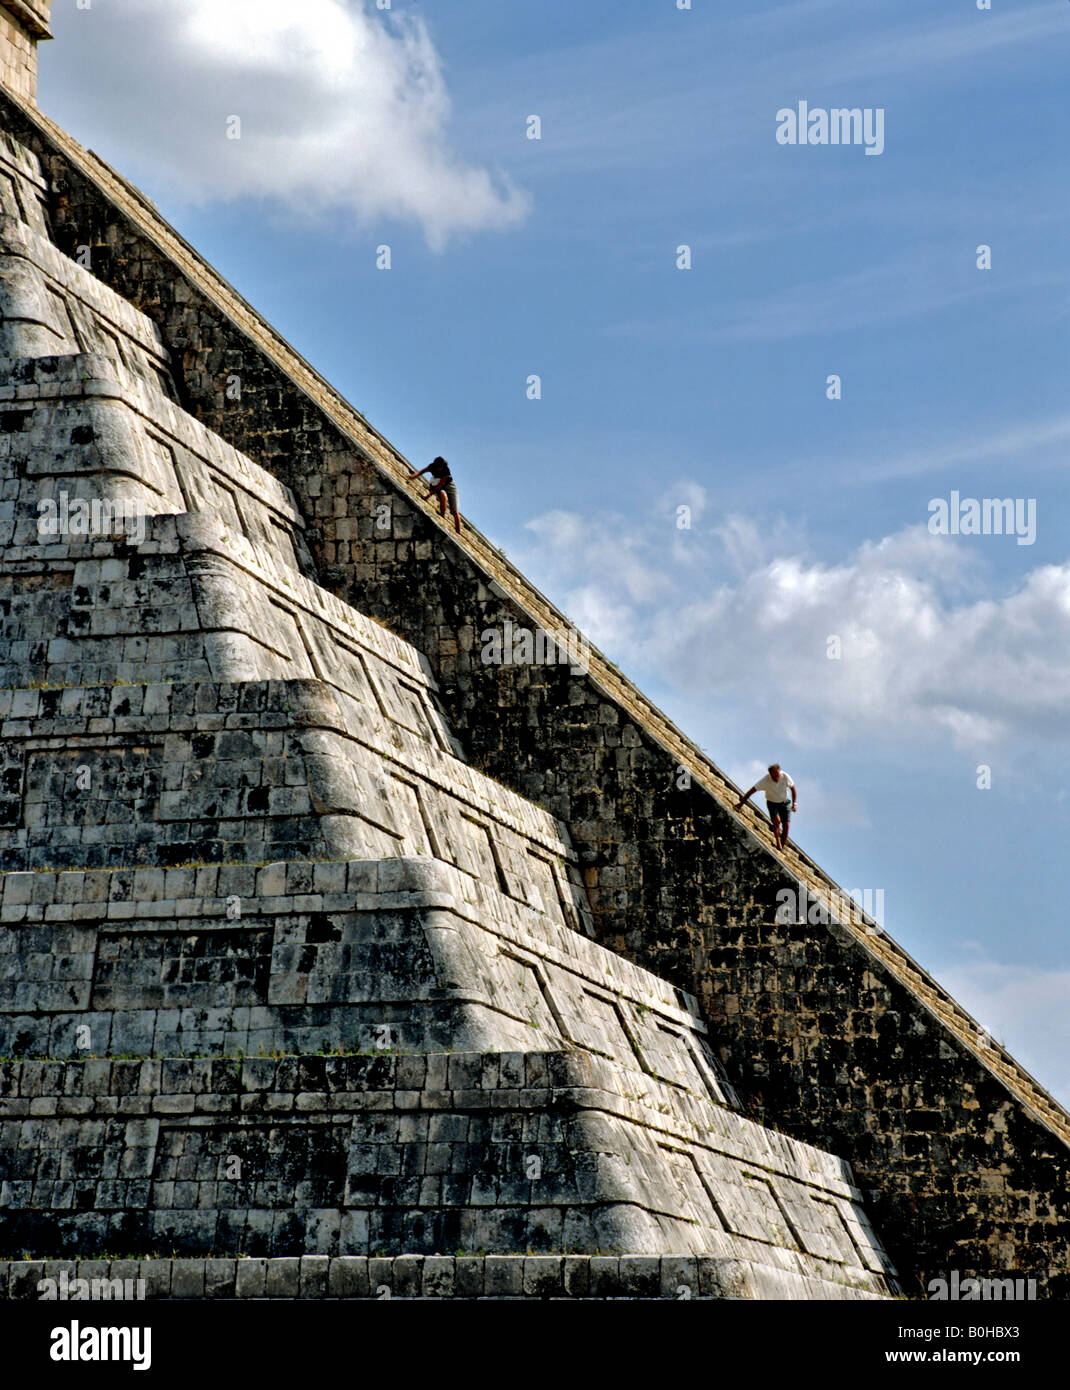 Pyramid, Temple of Kukulkan, Cichen Itza, Maya civilization in Yucatan, Mexico, Central America - Stock Image